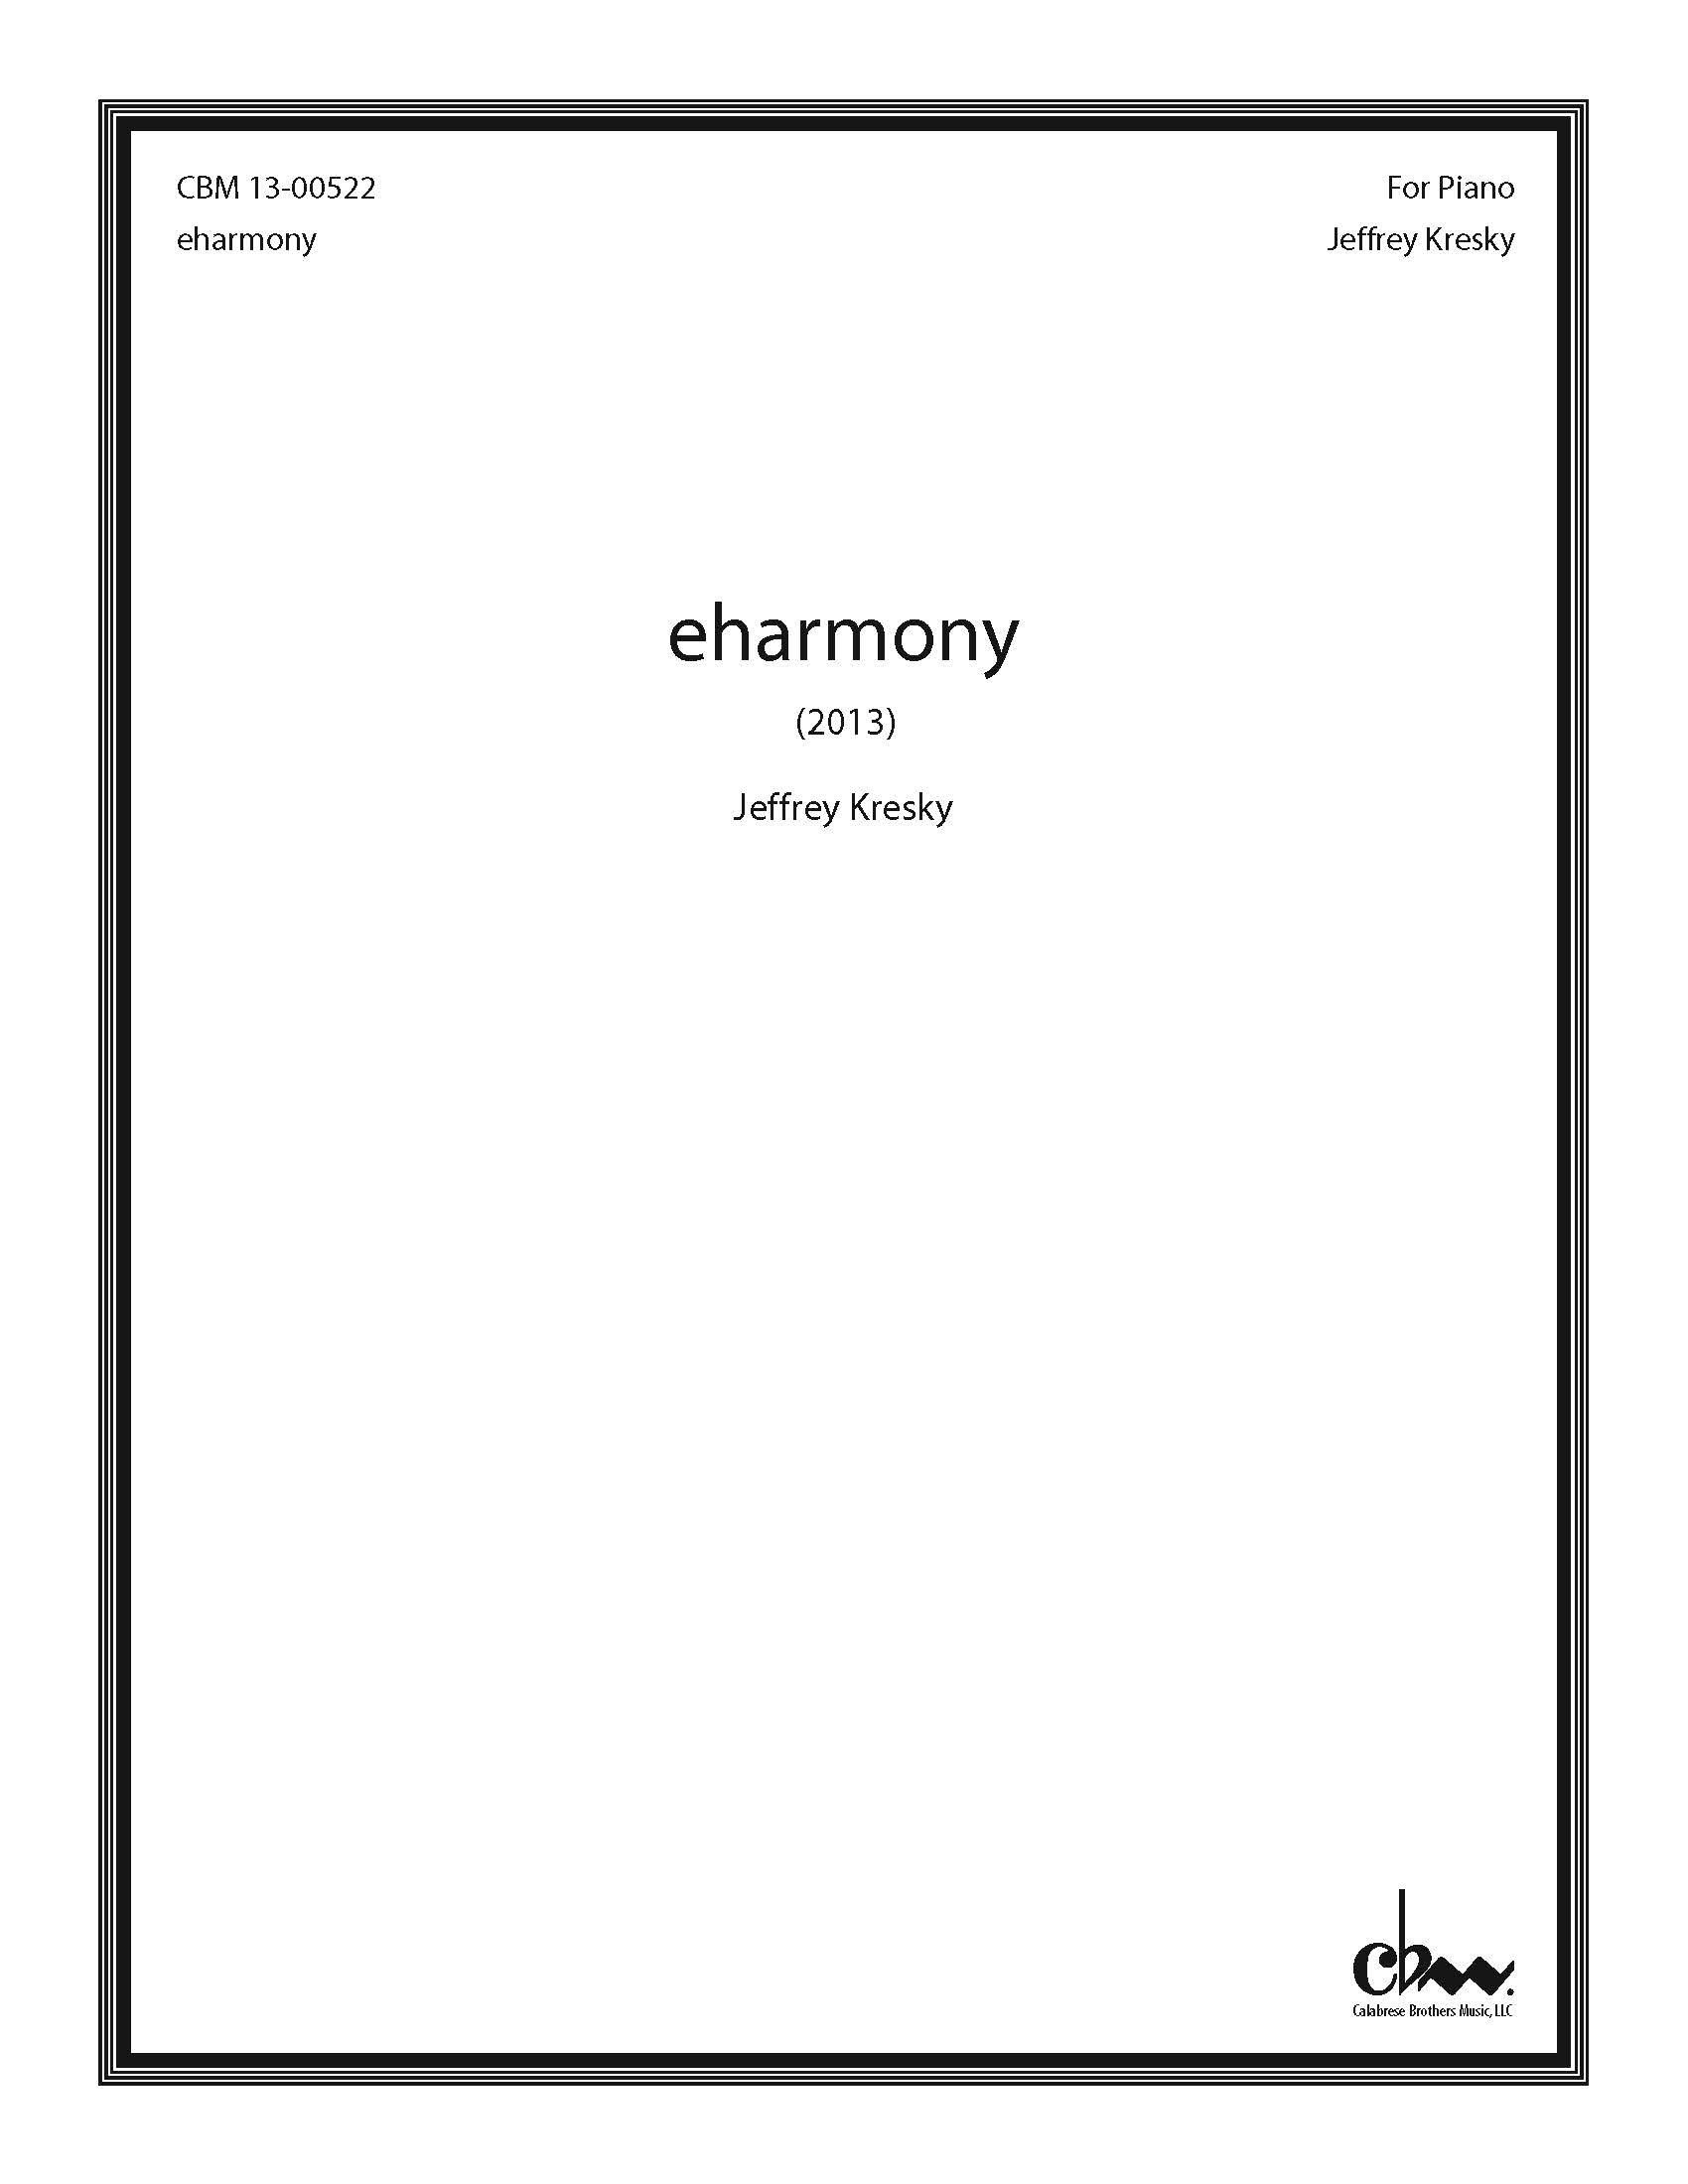 eharmony for Piano